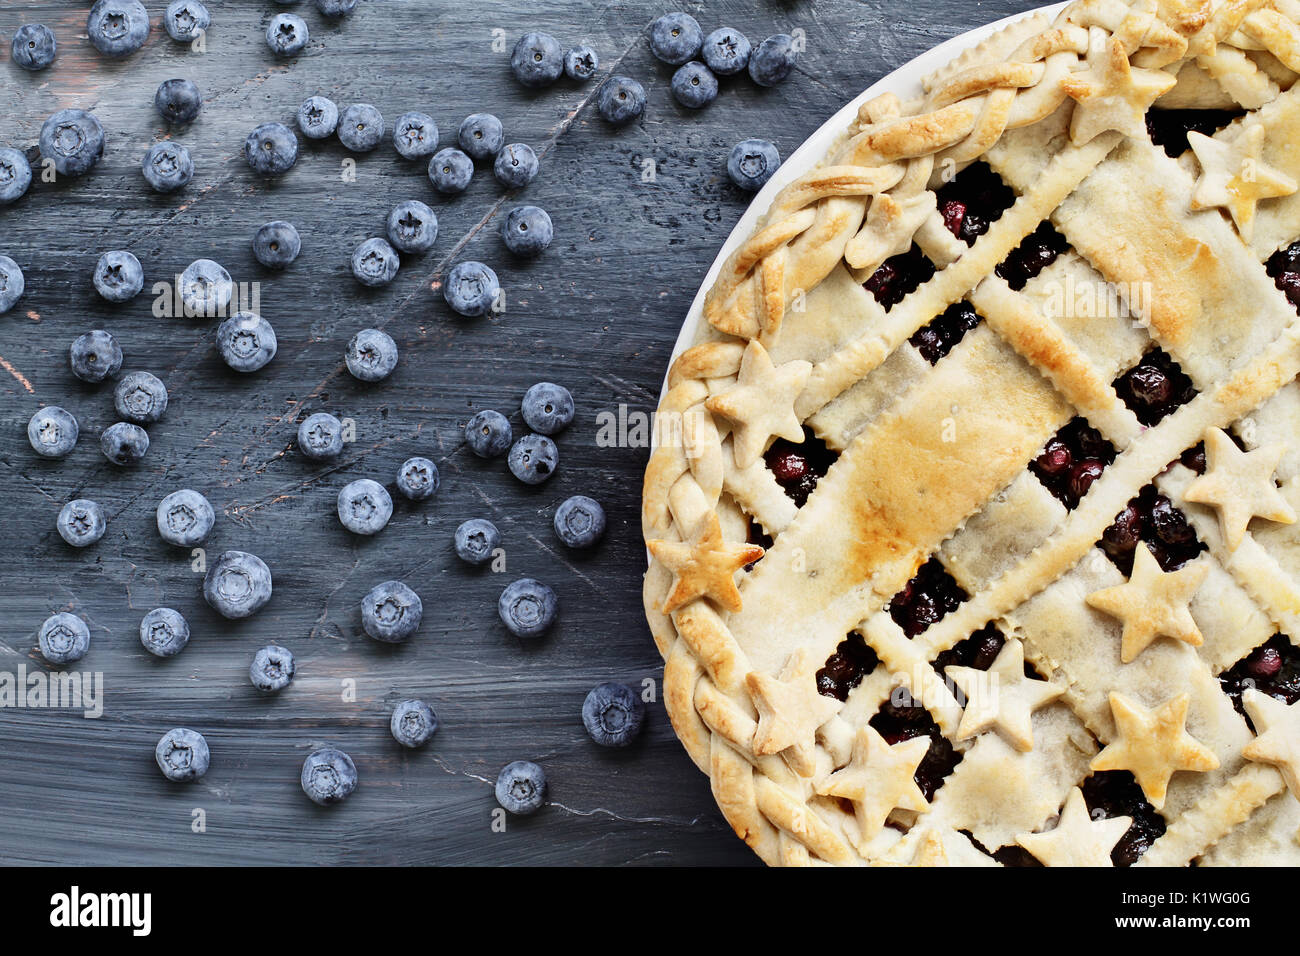 Top view of a blueberry pie with lattice and stars crust and fresh berries scattered across a painted textured wooden - Stock Image